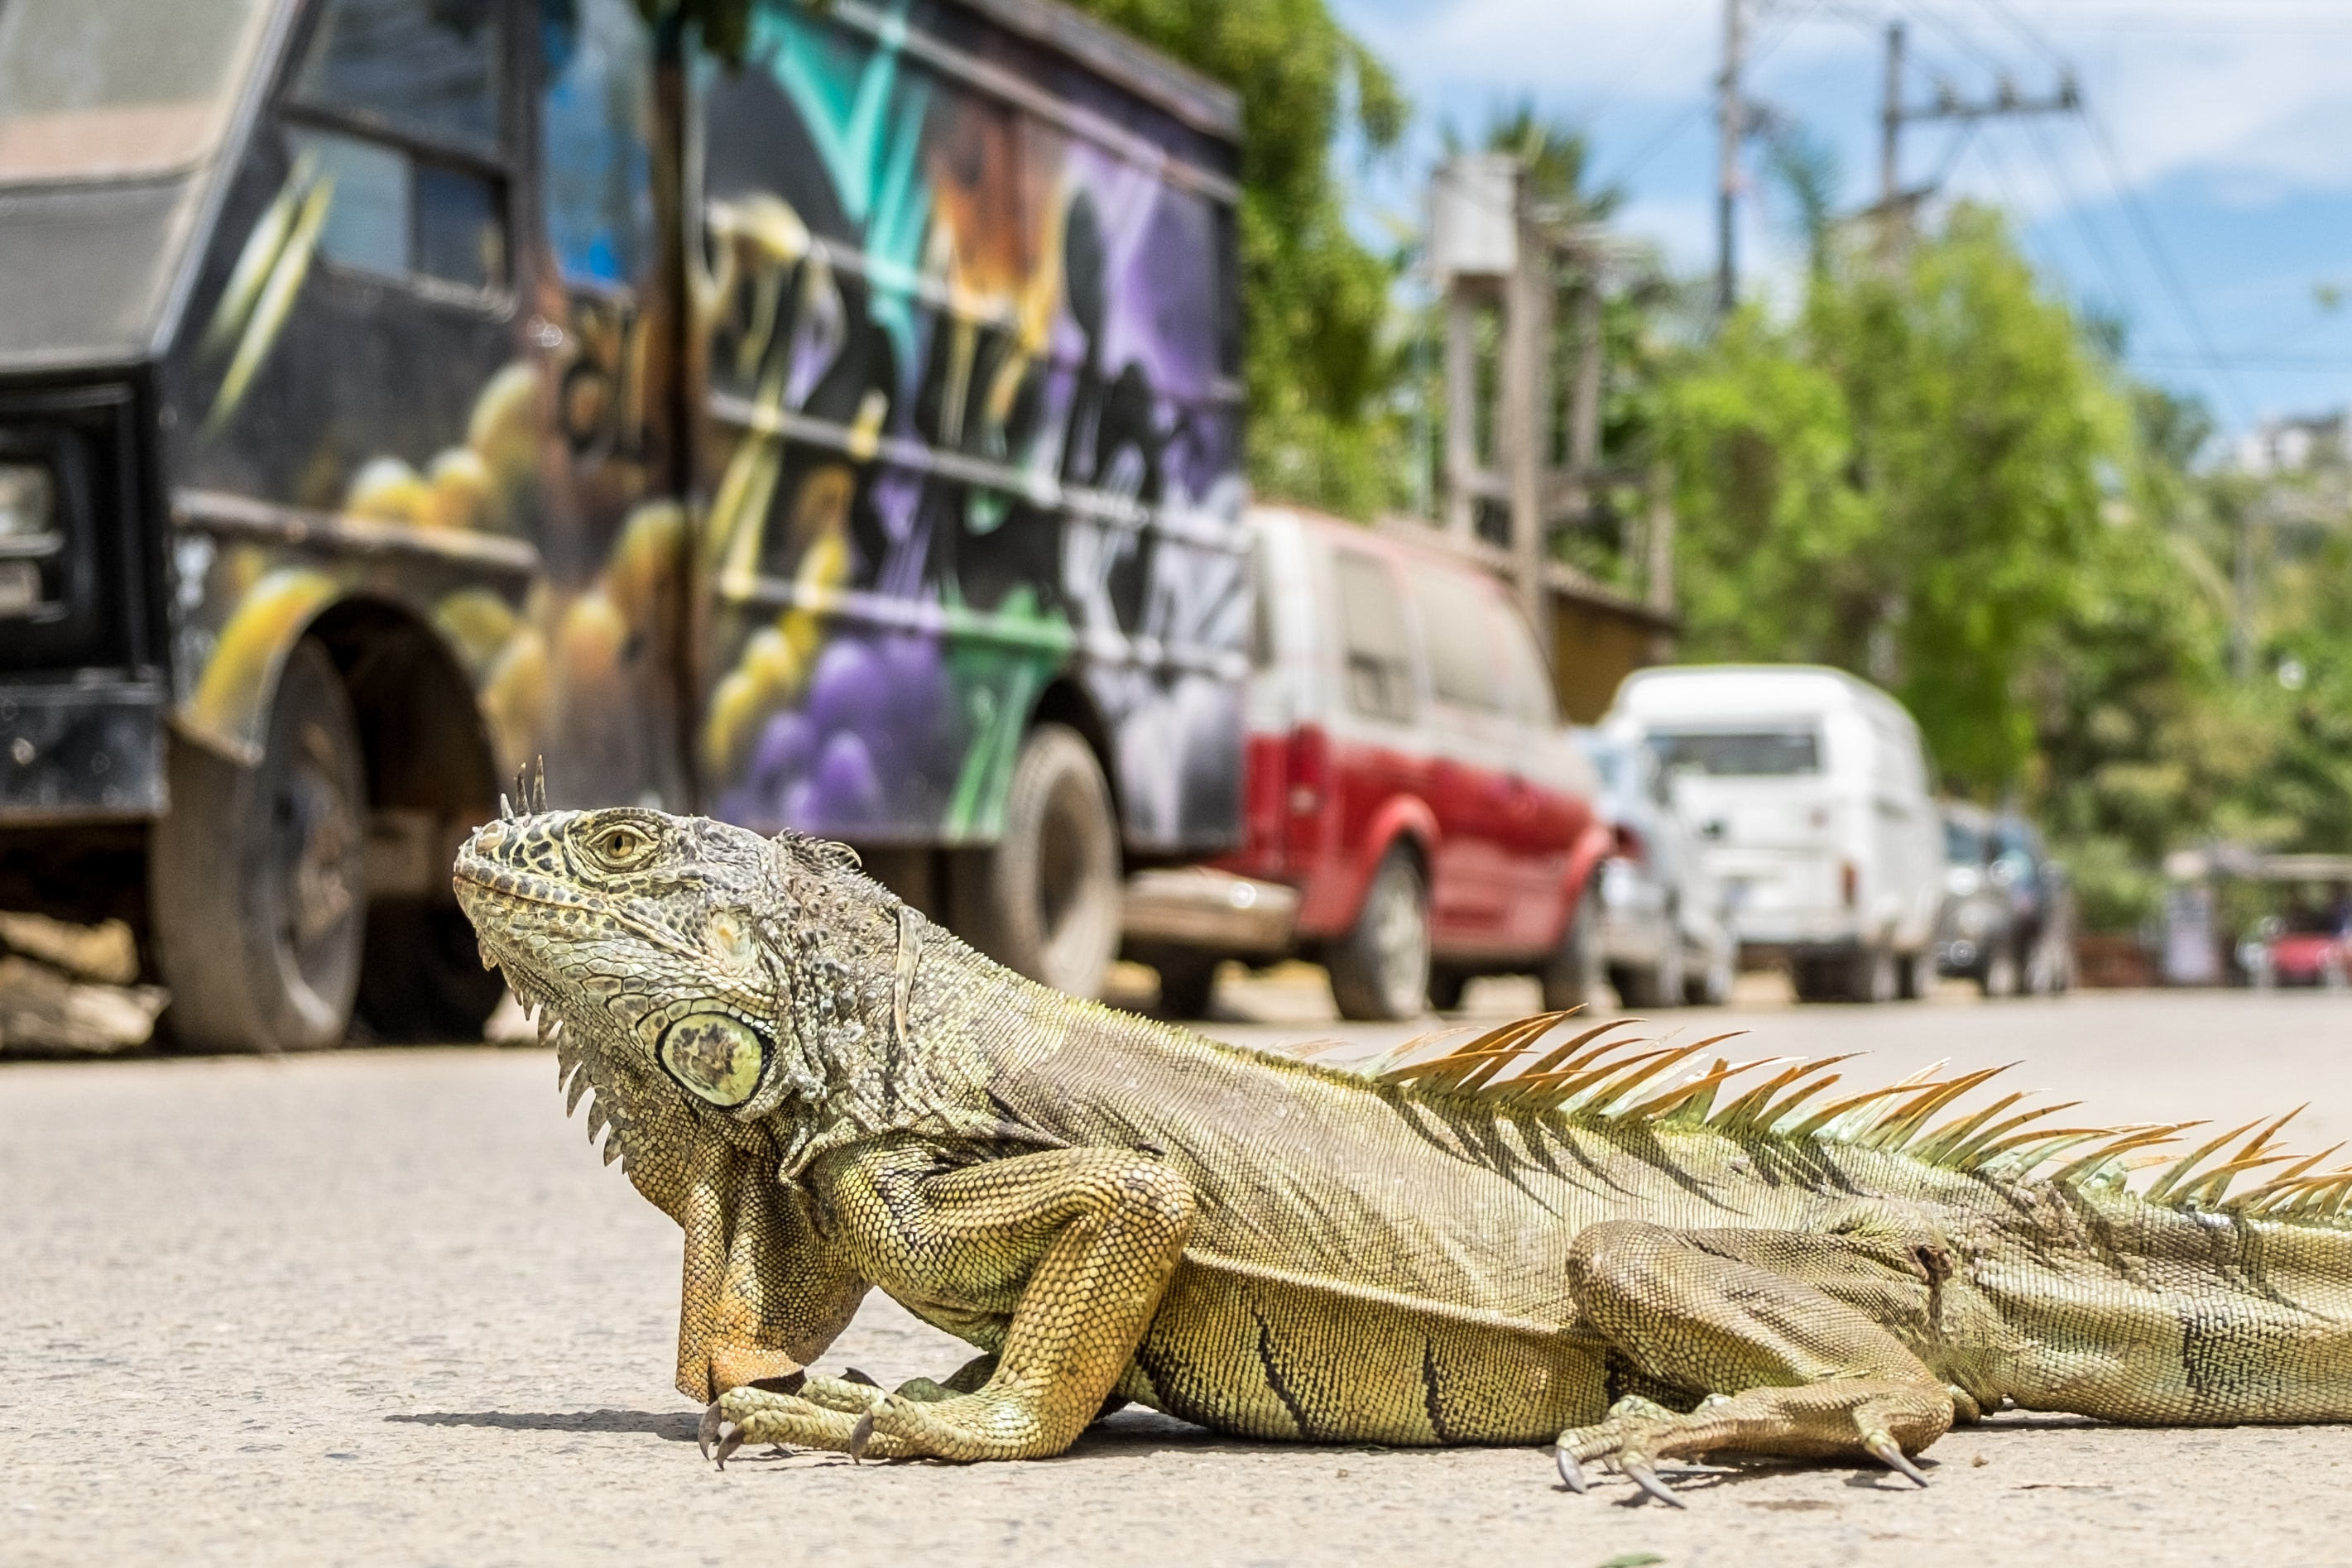 A reptile crossing a street on a sunny day, beside a painted black van and a row of cars